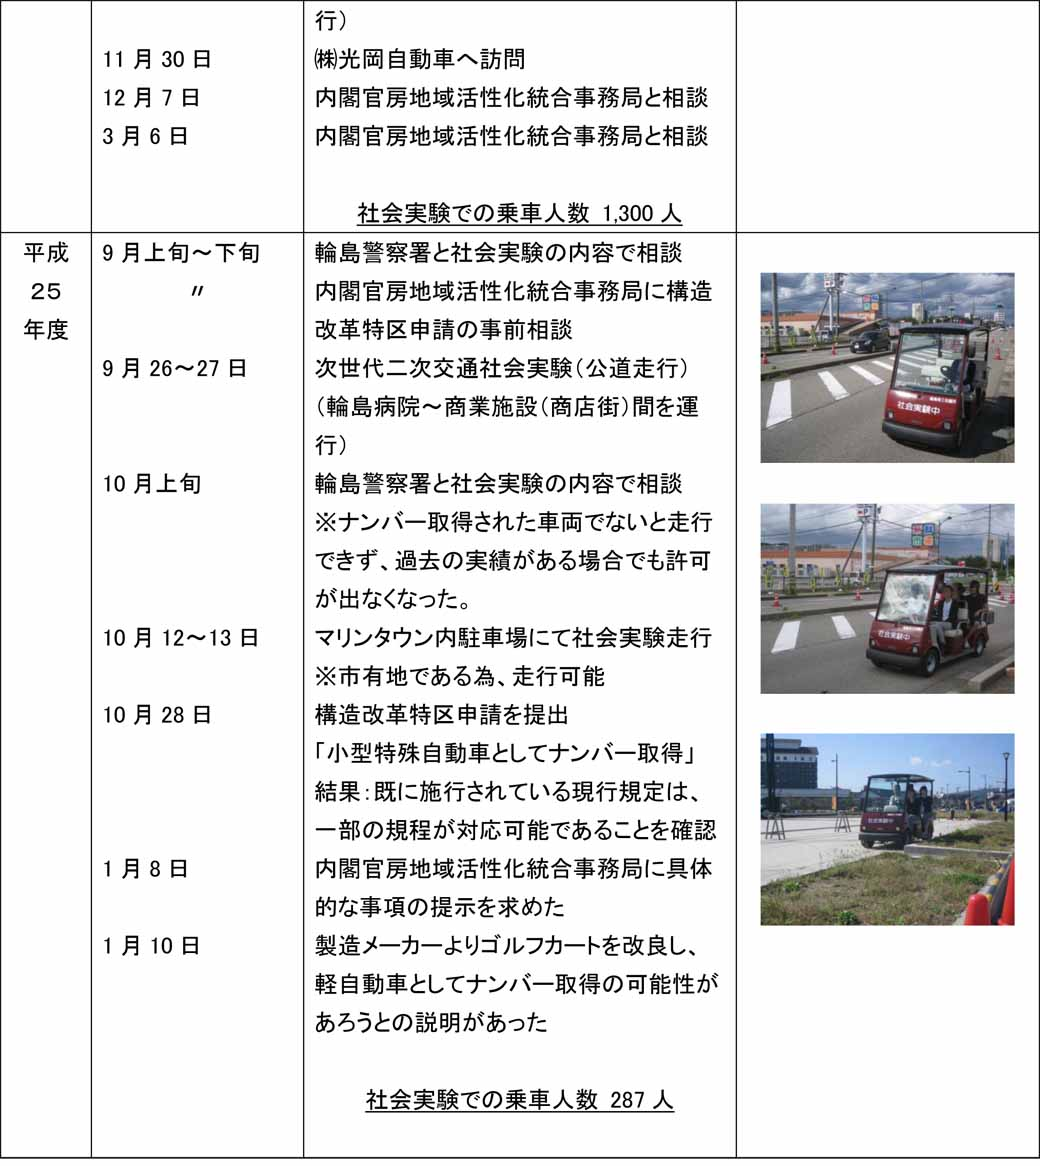 run-ishikawa-prefecture-wajima-local-revitalization-measures-by-the-eco-cart-is-good-eventually-also-view-automatic-operation20160708-3